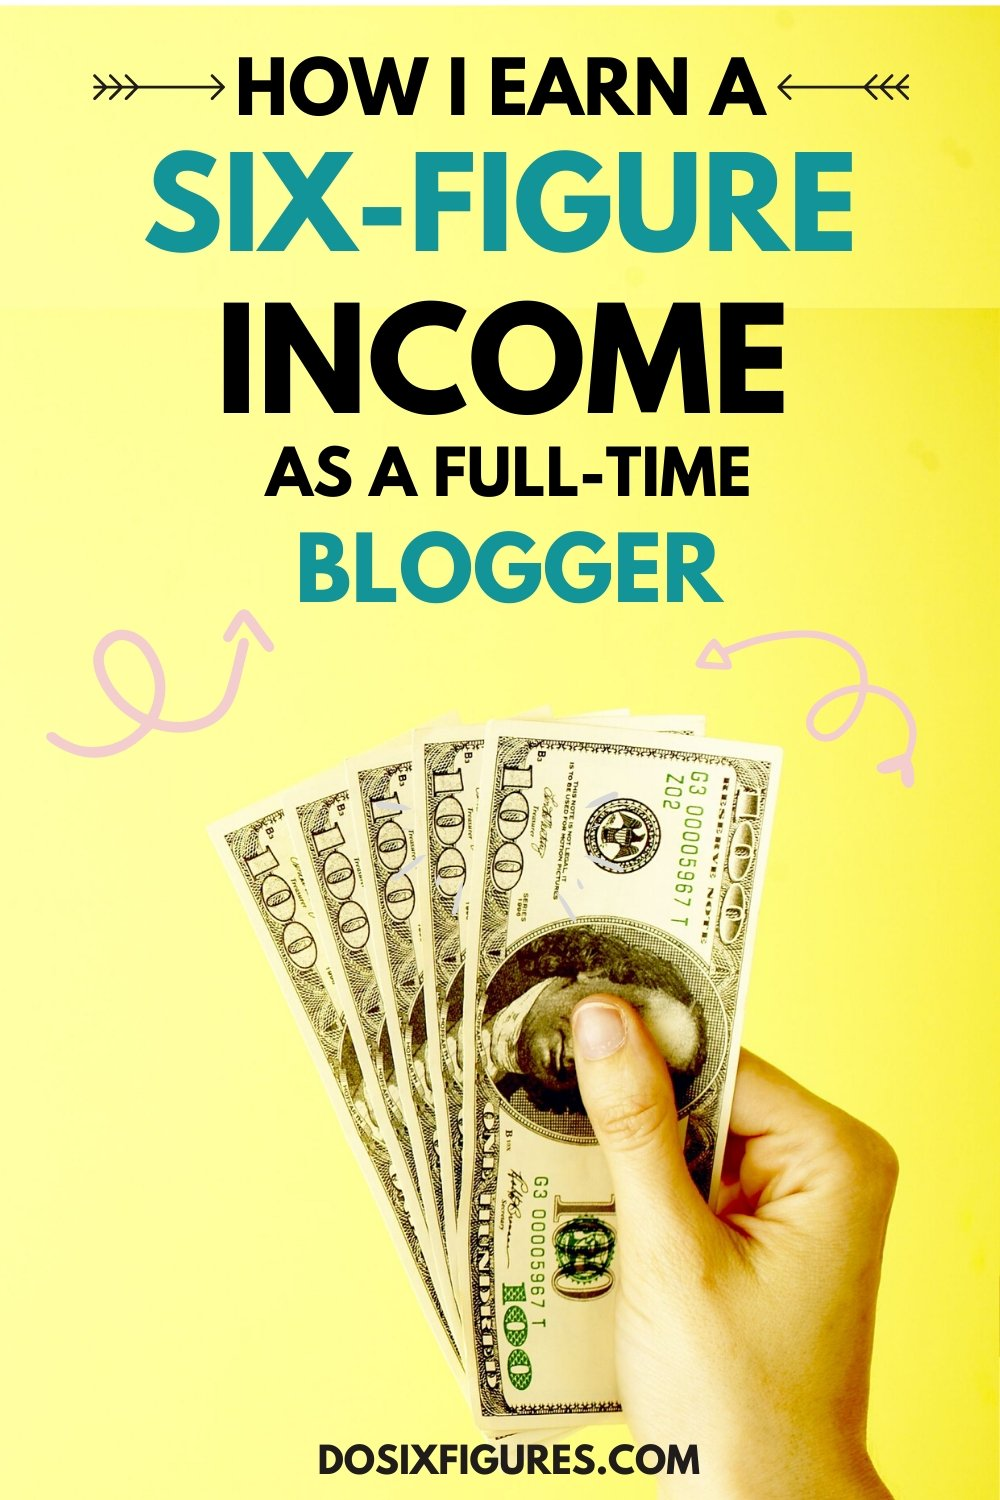 How Edwin earns a six-figure income as a full-time blogger